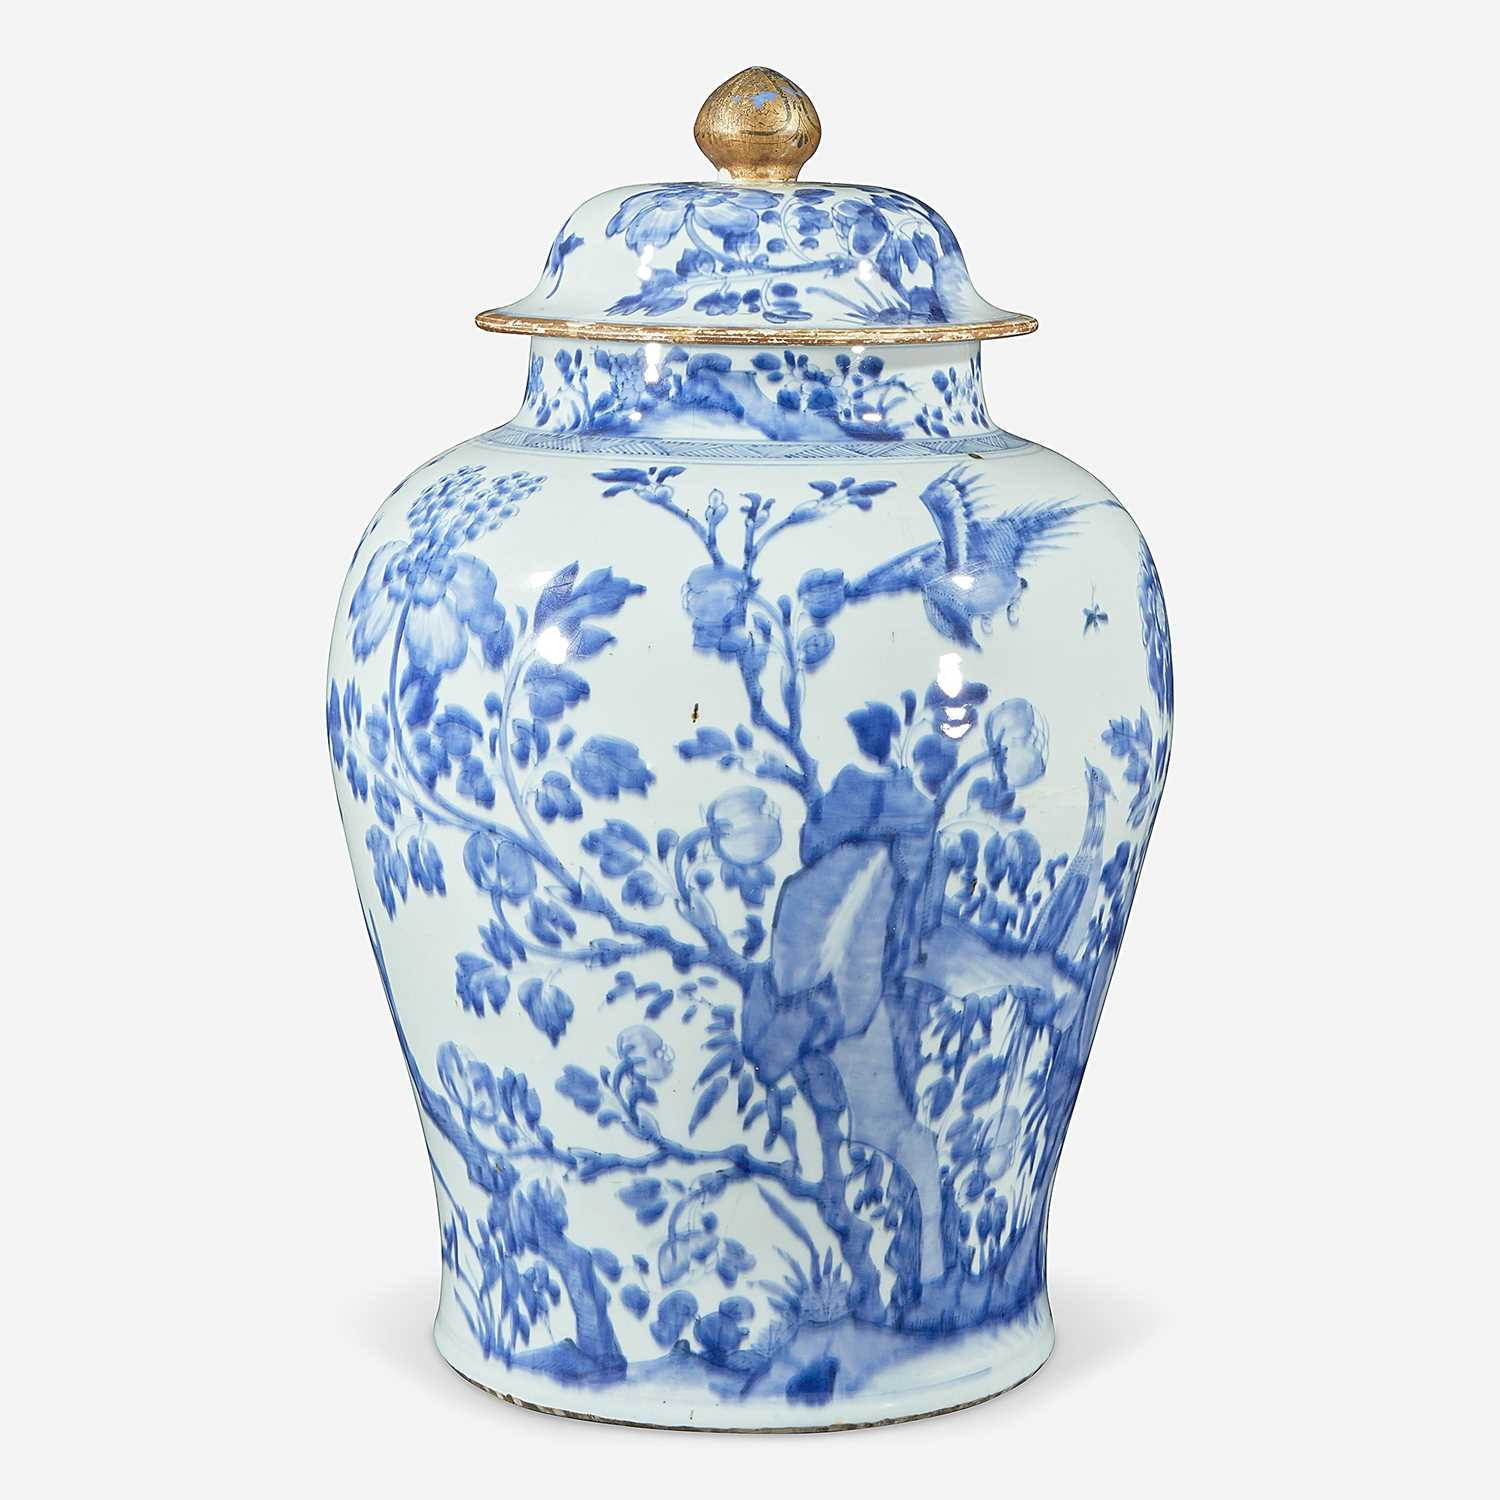 Lot 55 - A Chinese blue and white porcelain large jar & cover